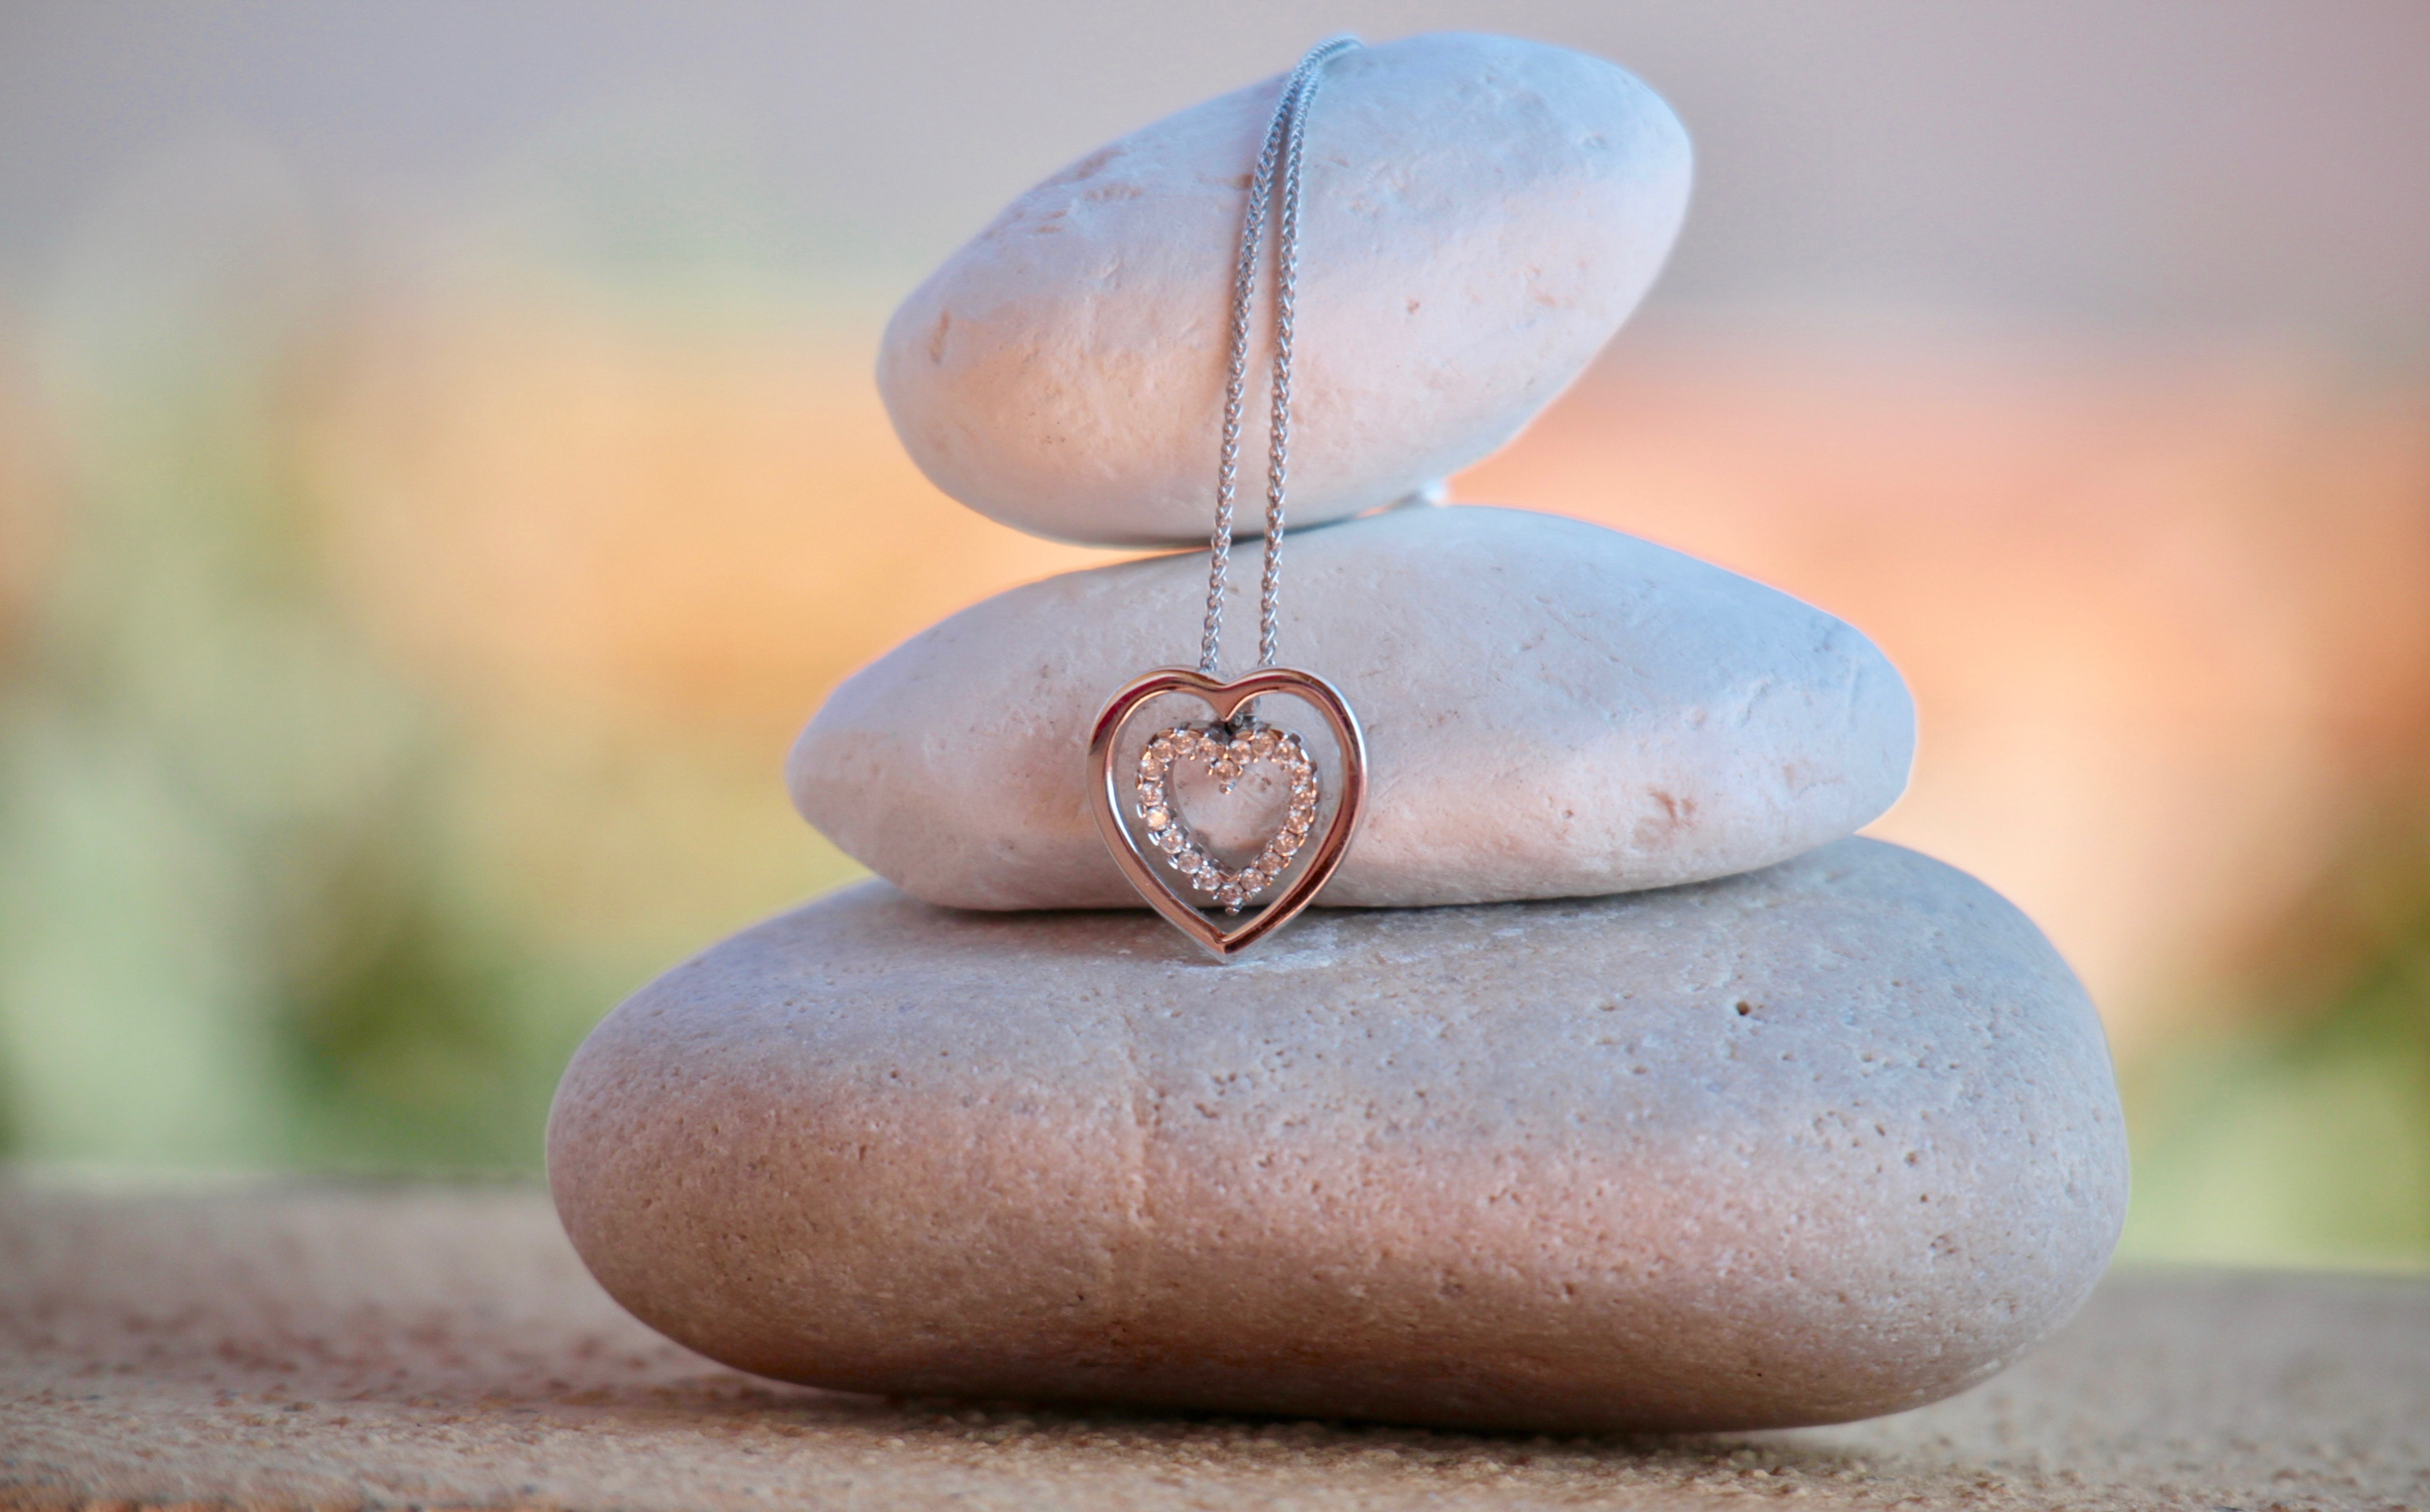 Heart Shaped Jewelry Gifts 2019